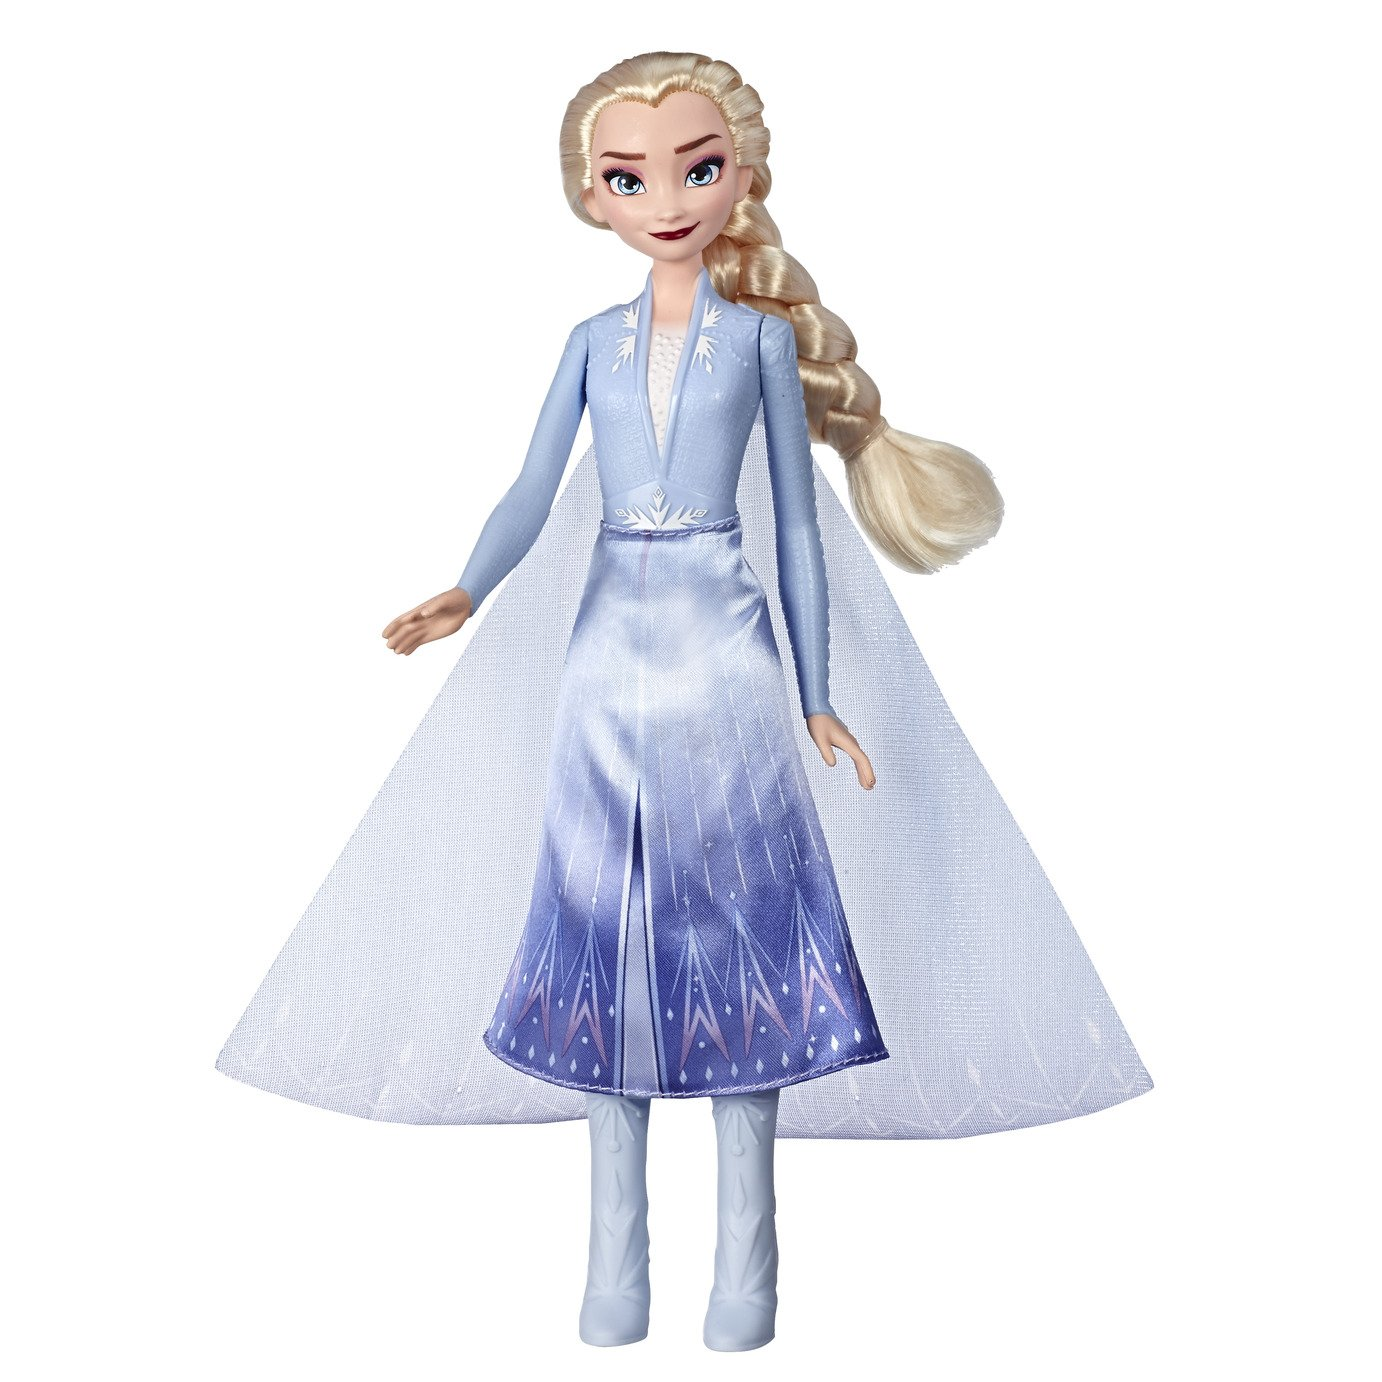 Disney Frozen 2 Elsa Magical Swirling Adventure Fashion Doll